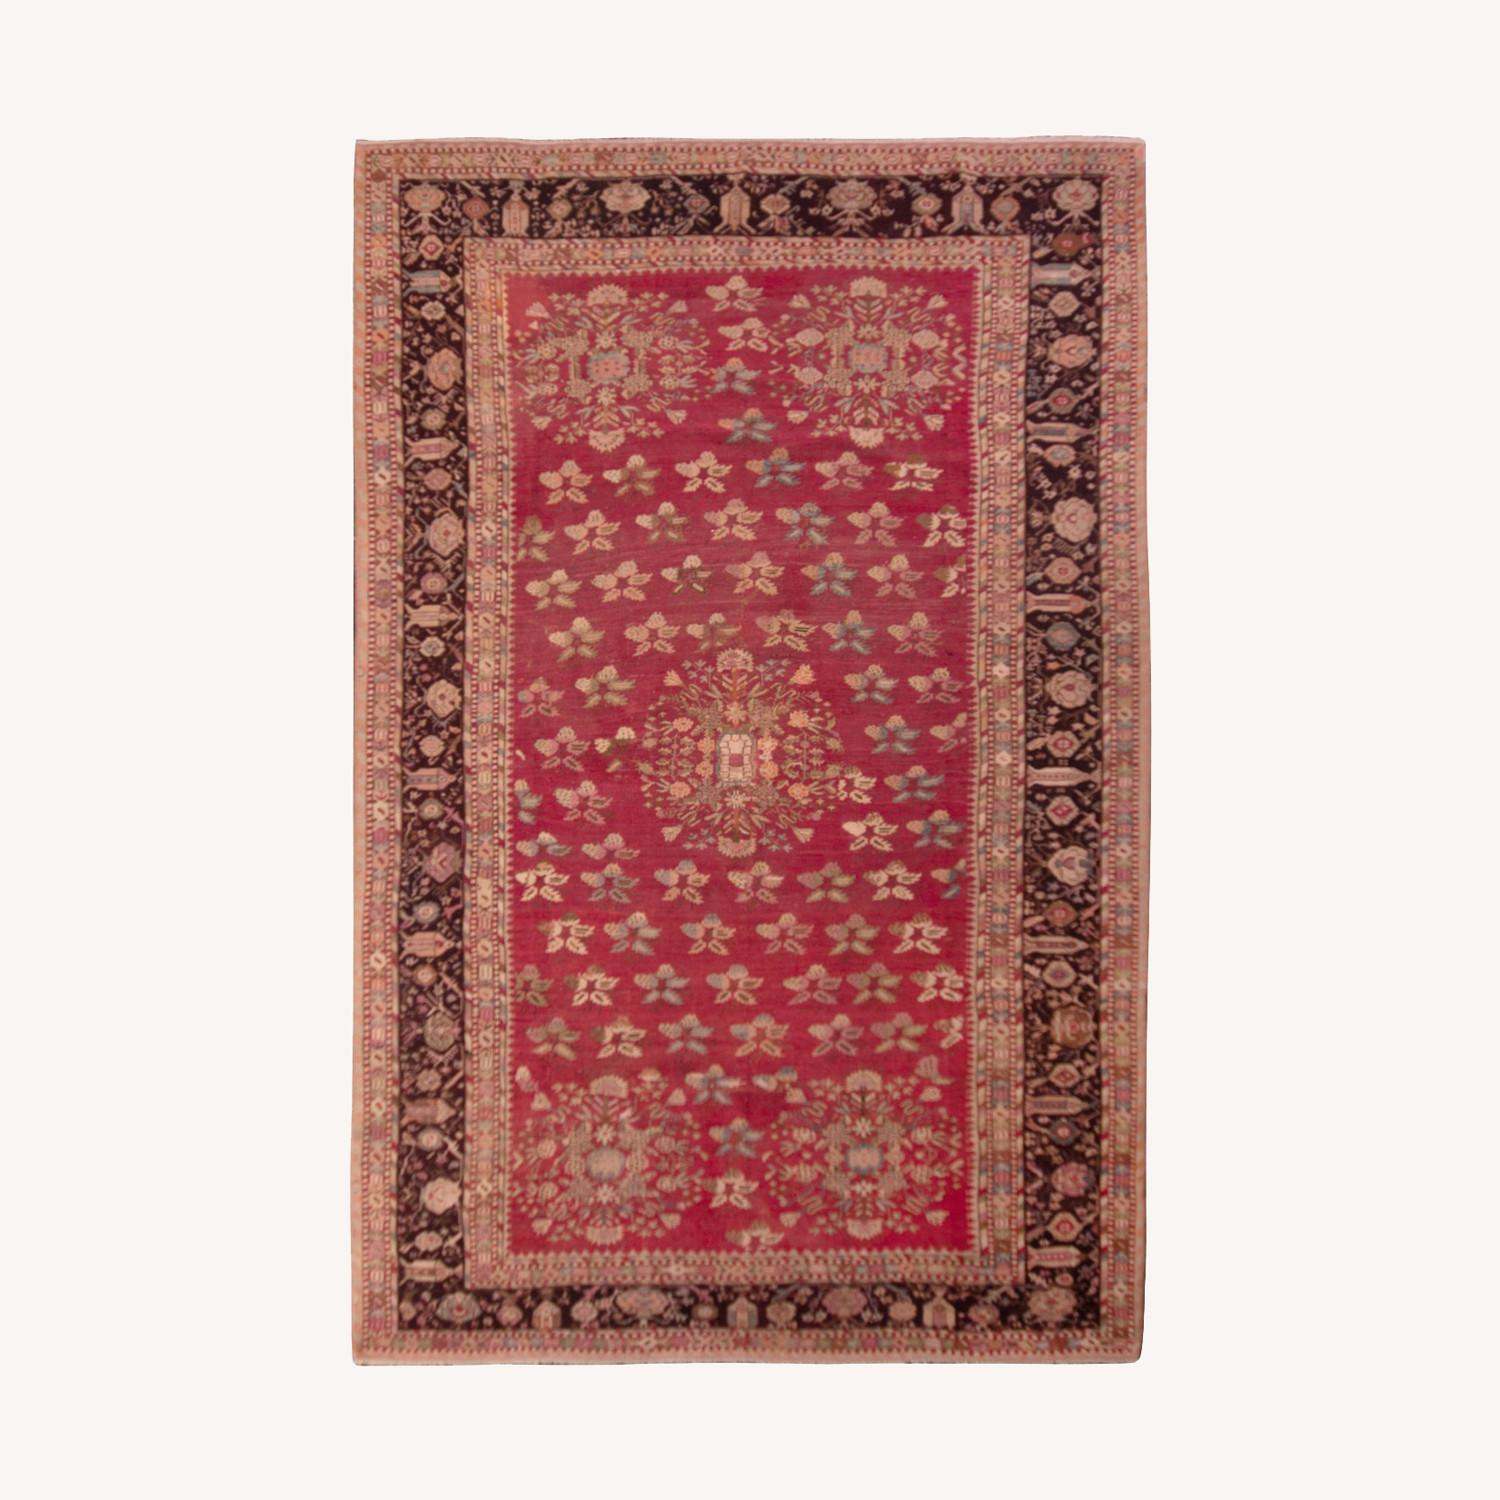 Antique Gordes Rug Red Floral Pattern - image-0